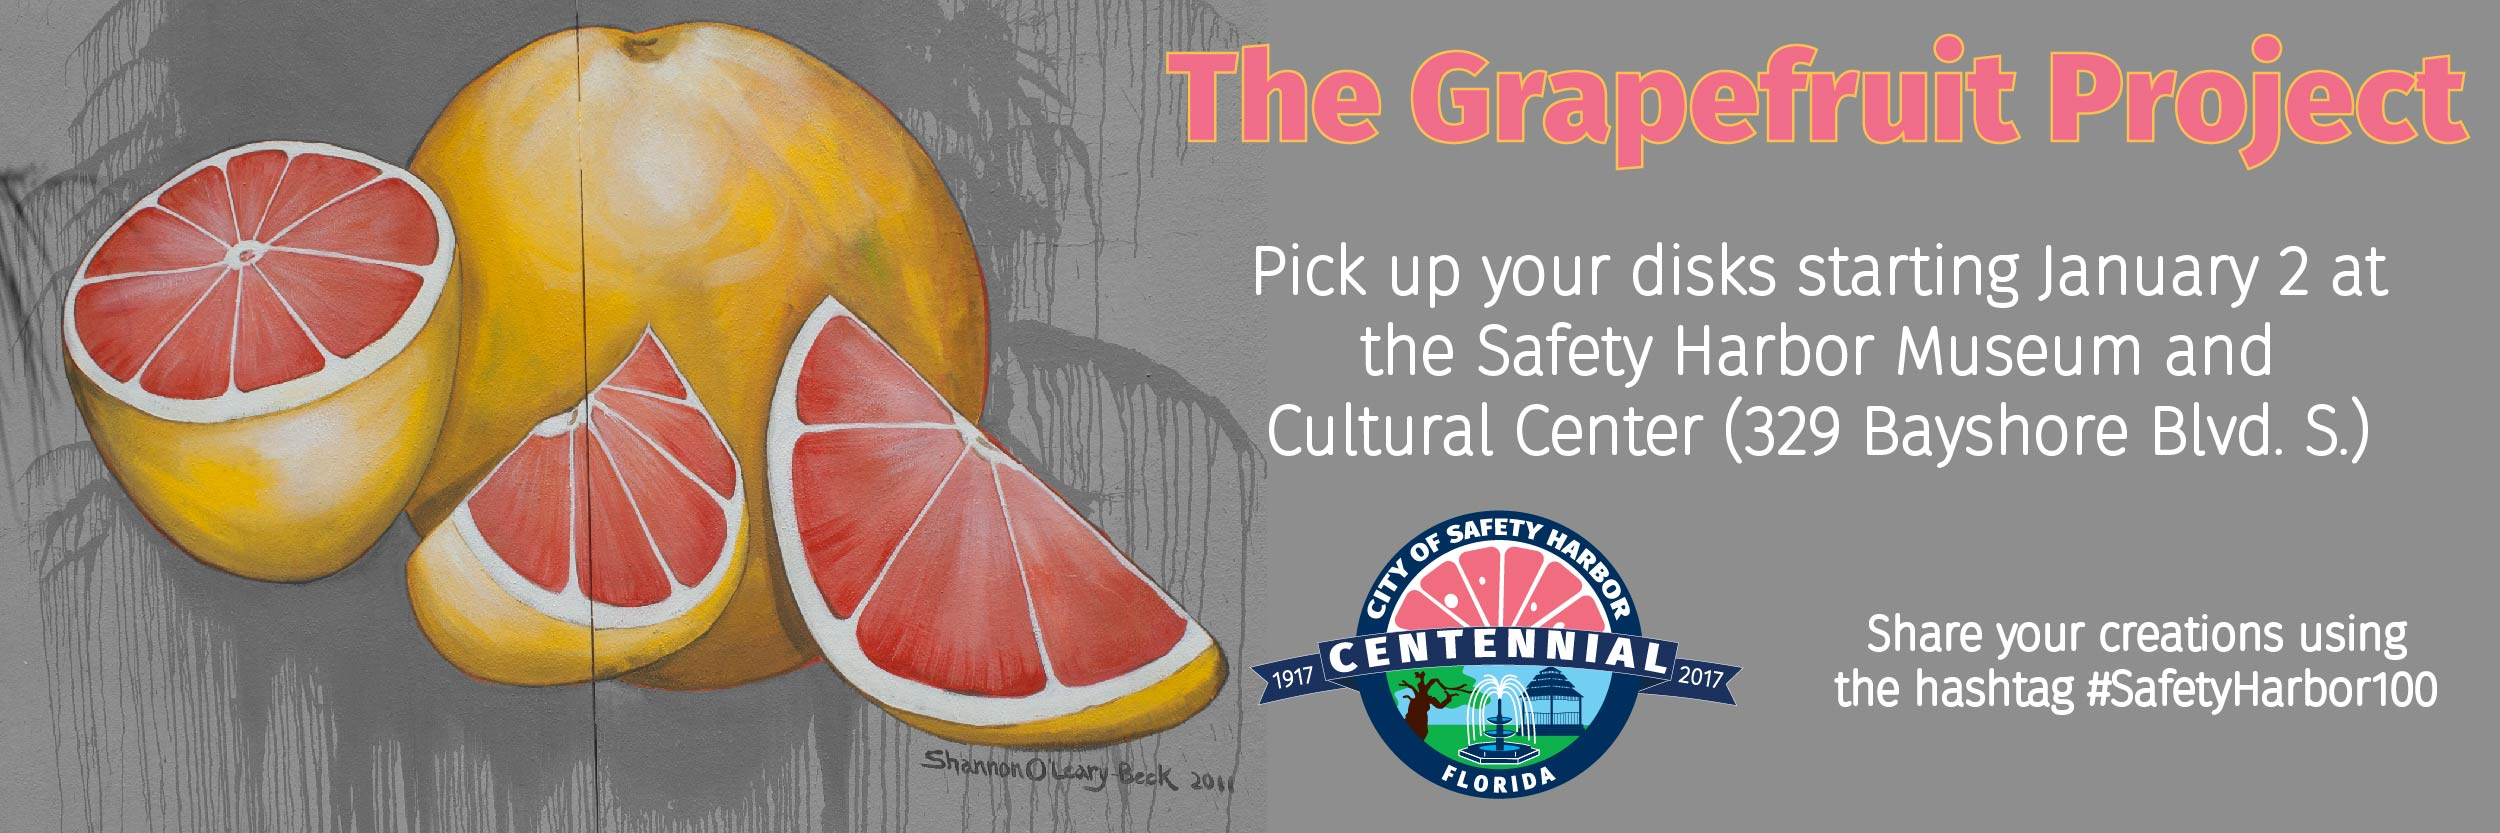 Grapefruit Project Web Banner